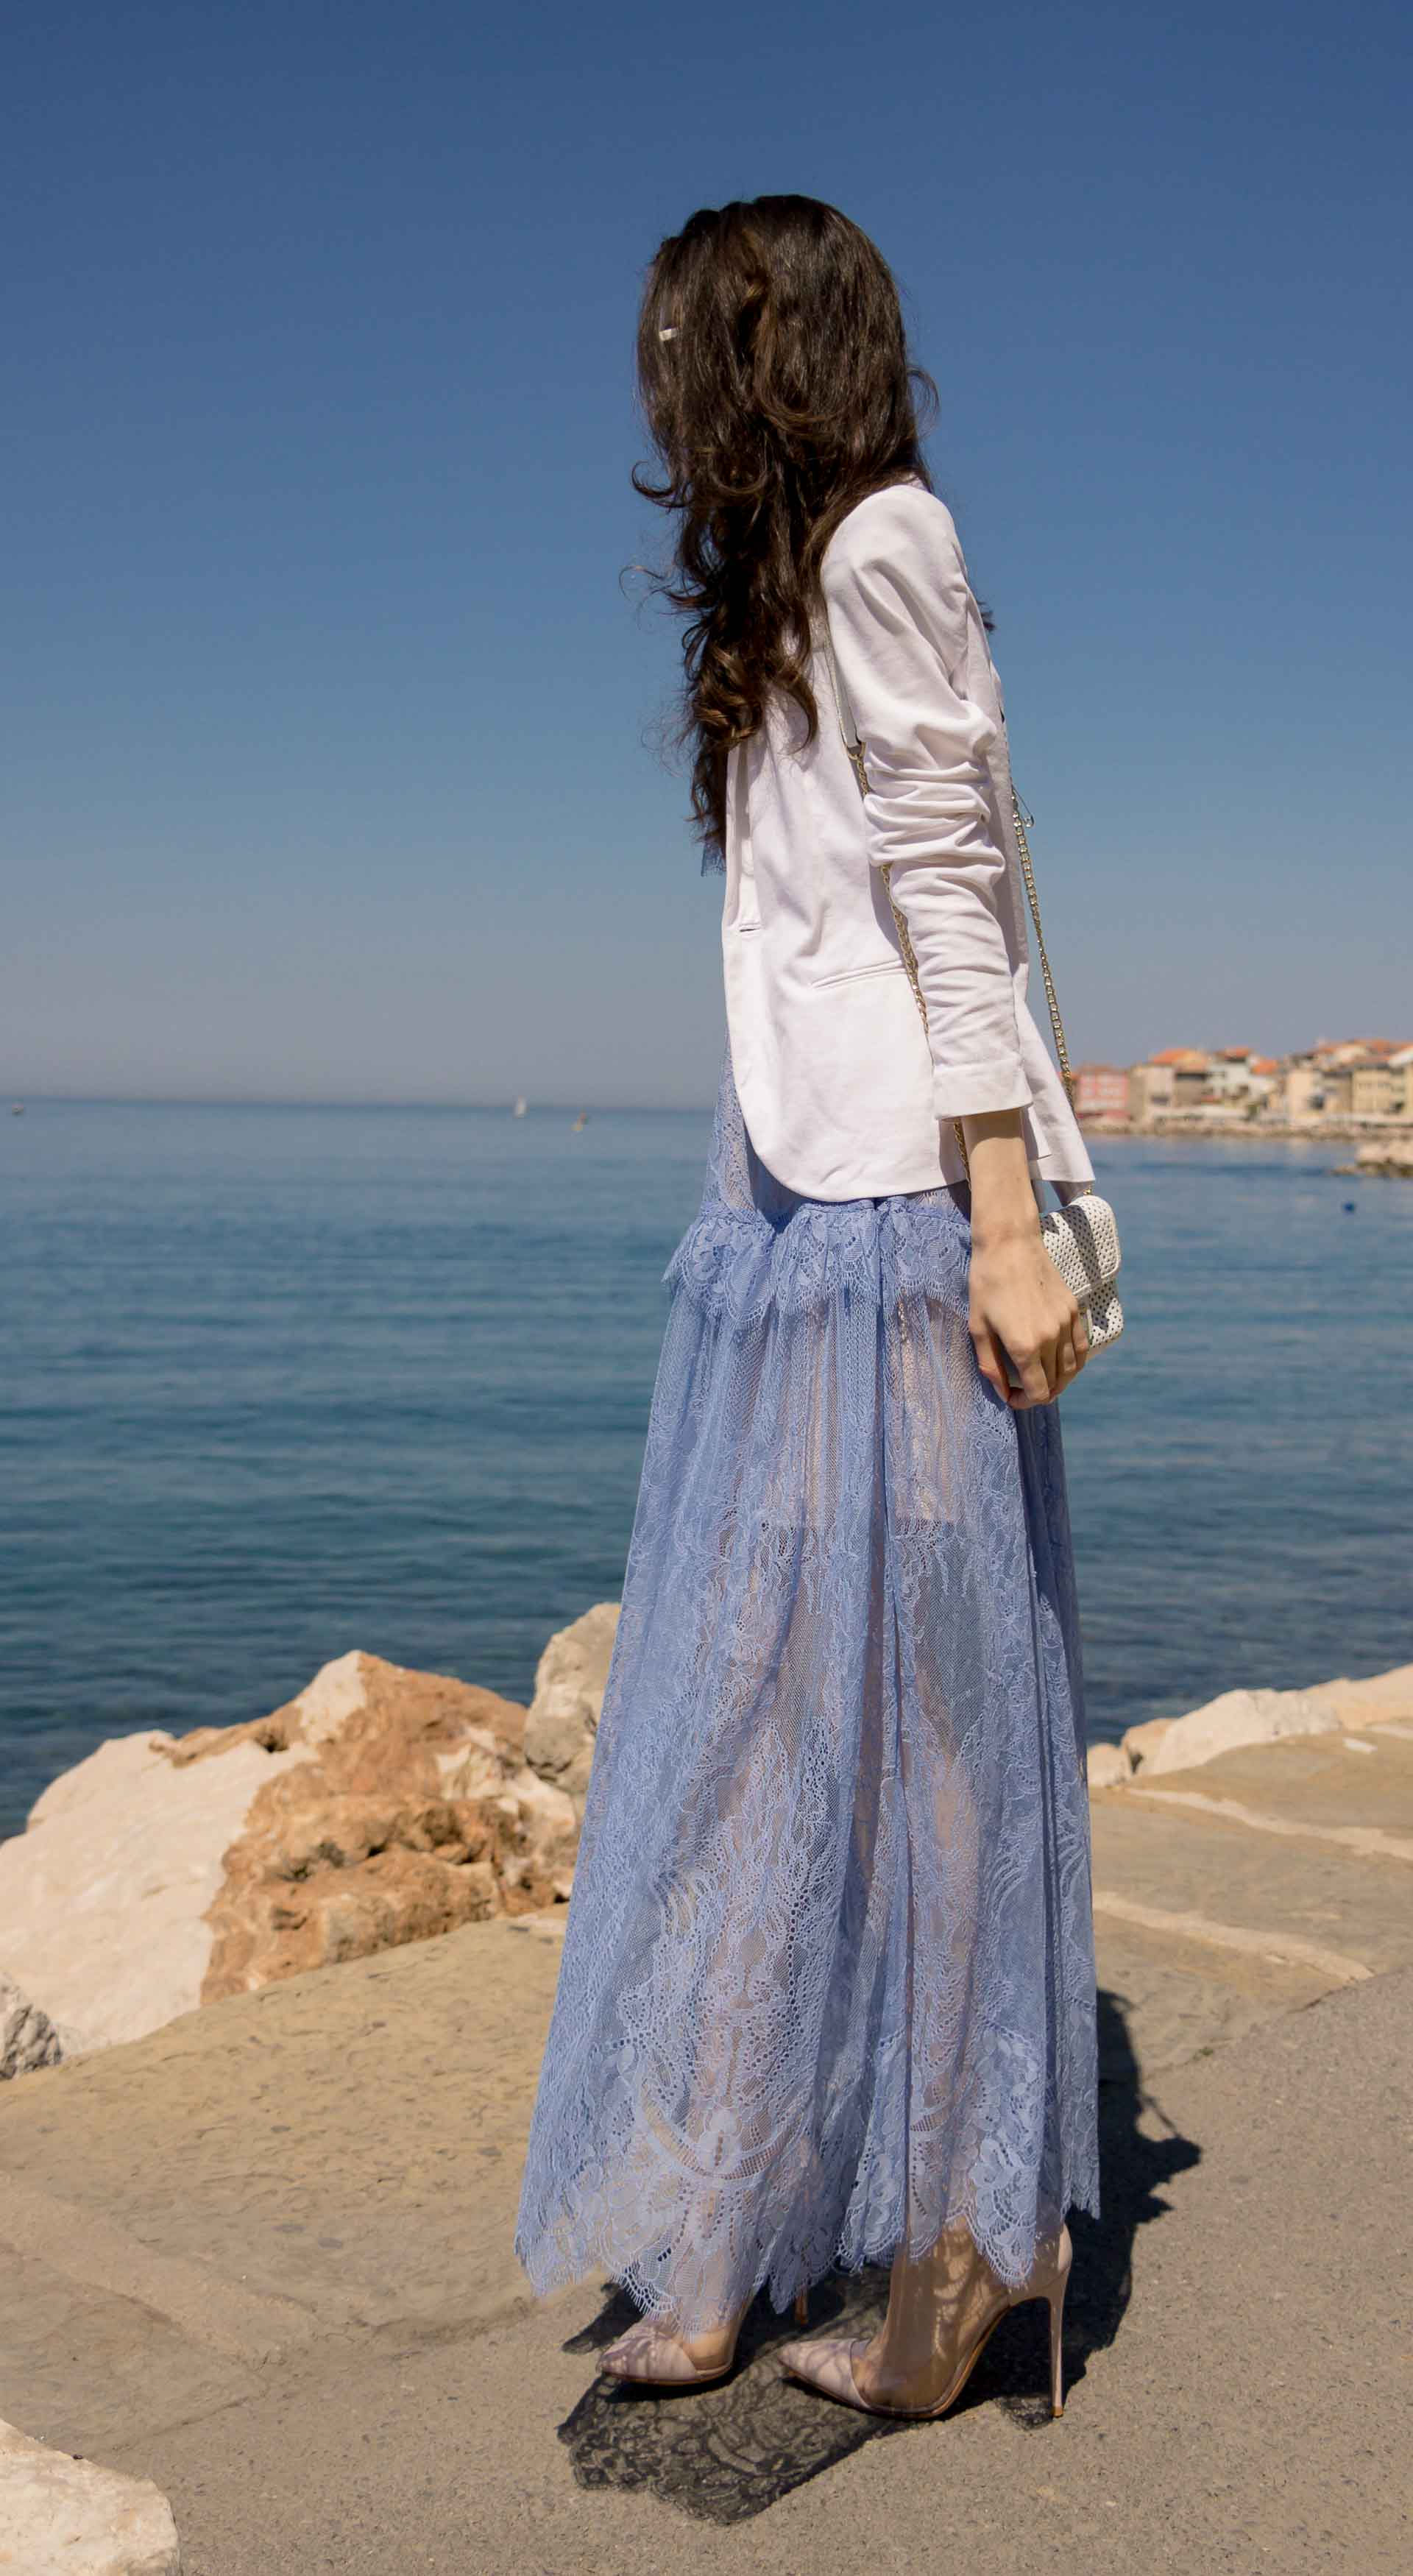 Veronika Lipar Fashion Blogger of Brunette from Wall Street wearing Self-Portrait blue lace midi dress, white single button blazer, blush Gianvito Rossi plexi pumps, white shoulder bag, Lespecs white cat eye sunglasses while standing by the sea